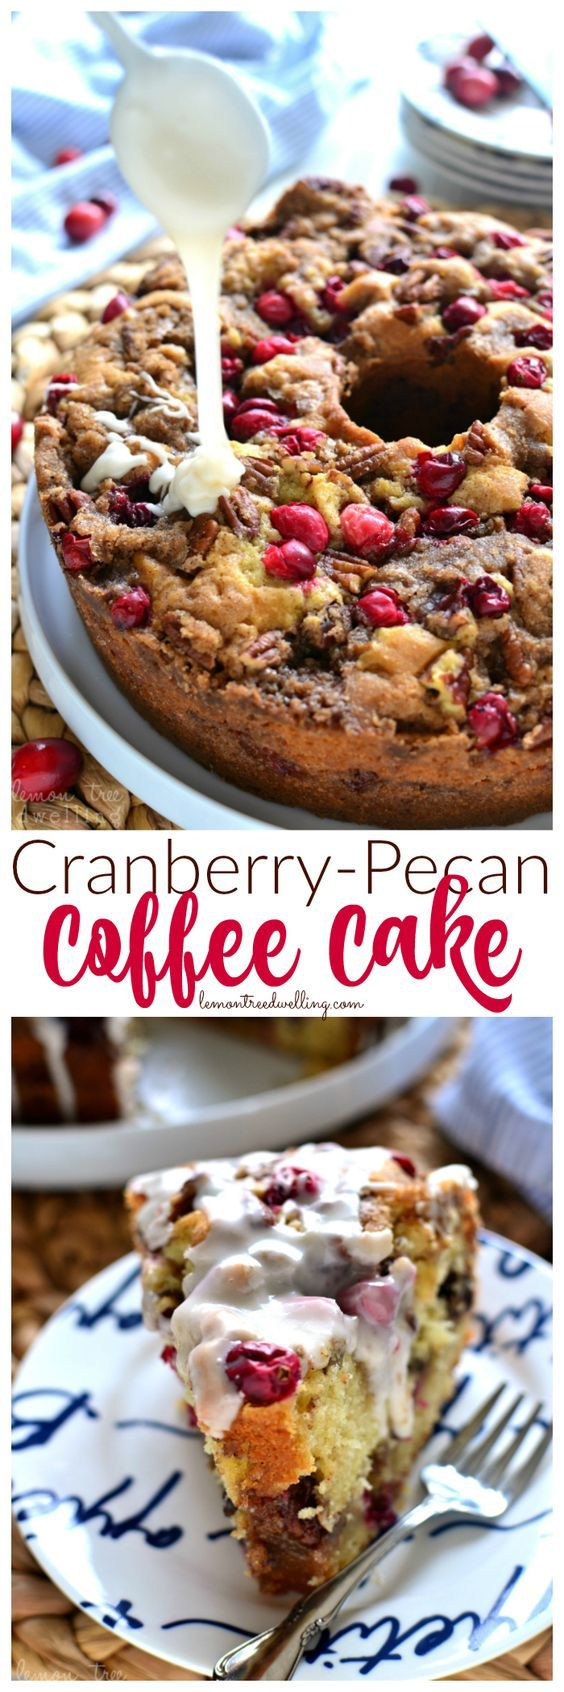 This Cranberry-Pecan Coffee Cake is packed with fresh cranberries, pecans, and brown sugar streusel, then topped with a creamy vanilla glaze. Serve it for breakfast or dessert....either way, it's perf (Coffee Cake)